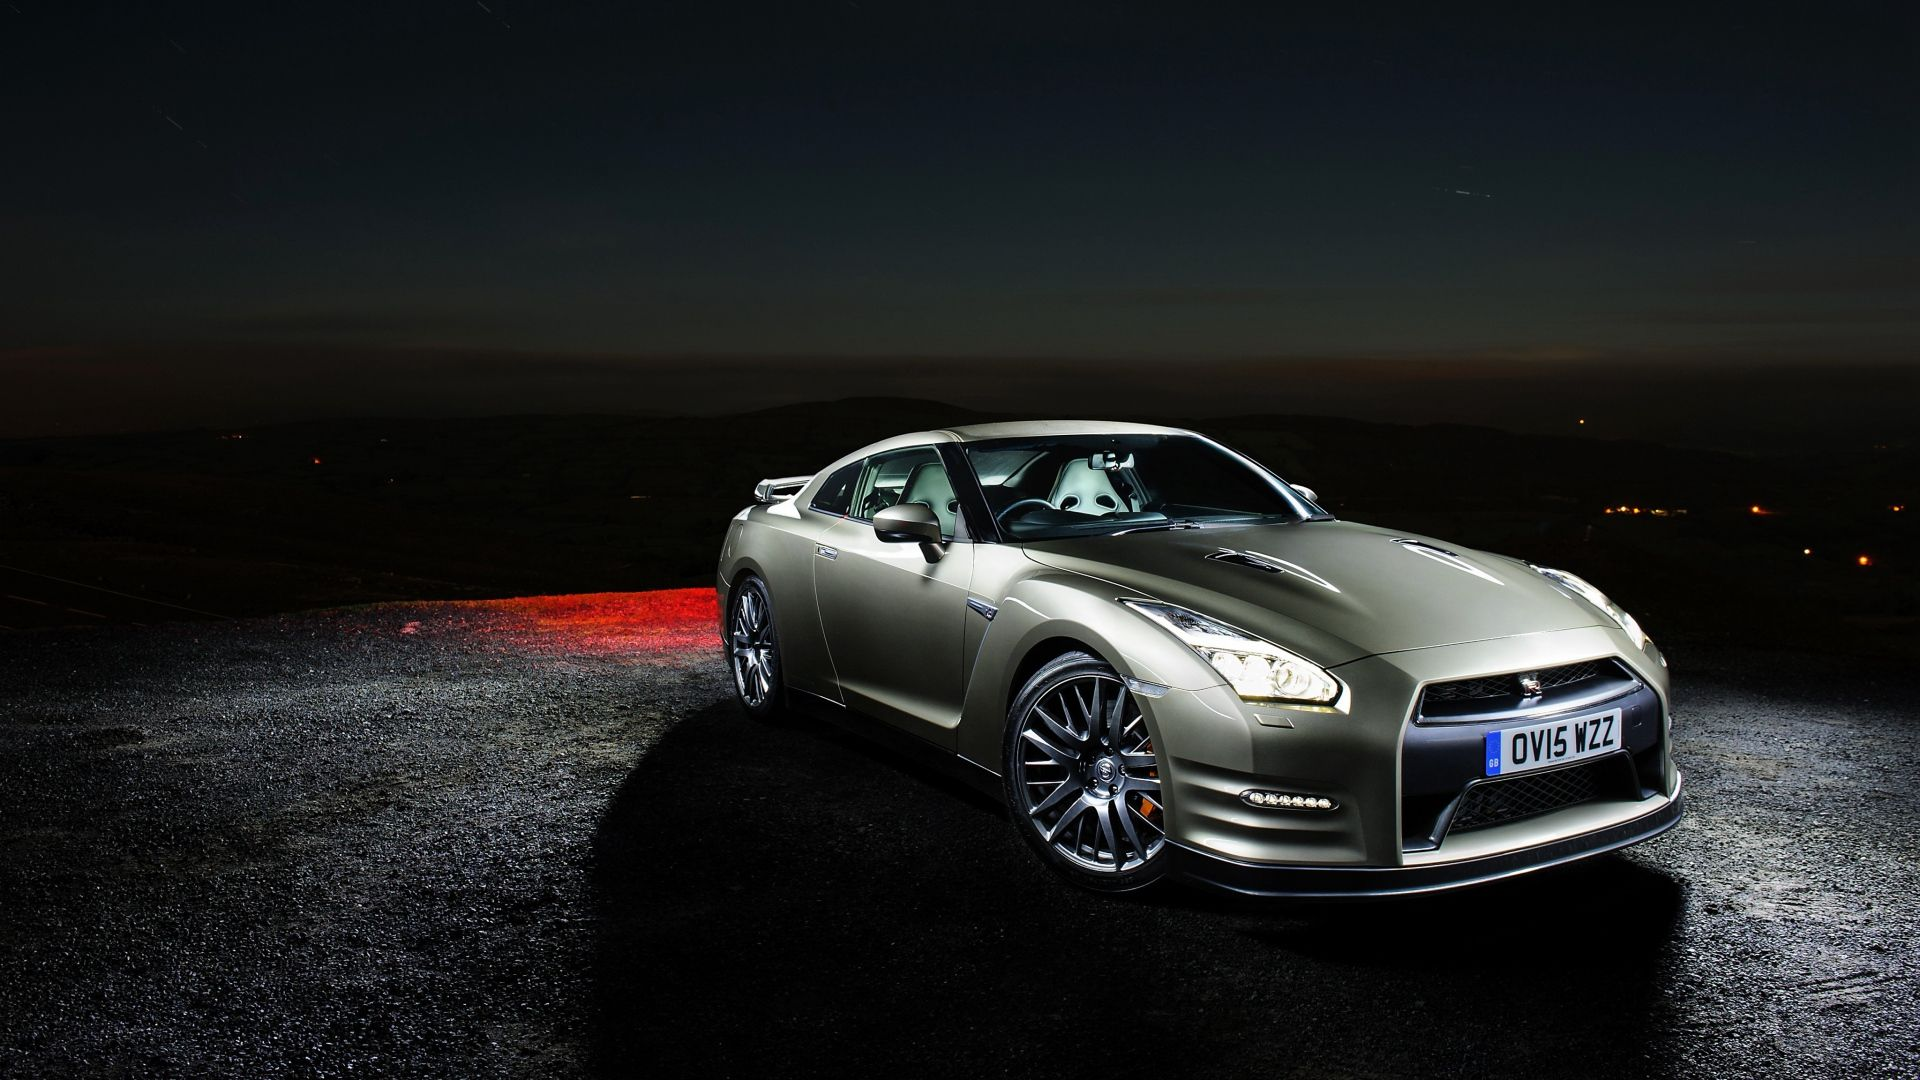 1920x1080 Wallpaper Nissan Gt R Side View Night With Images